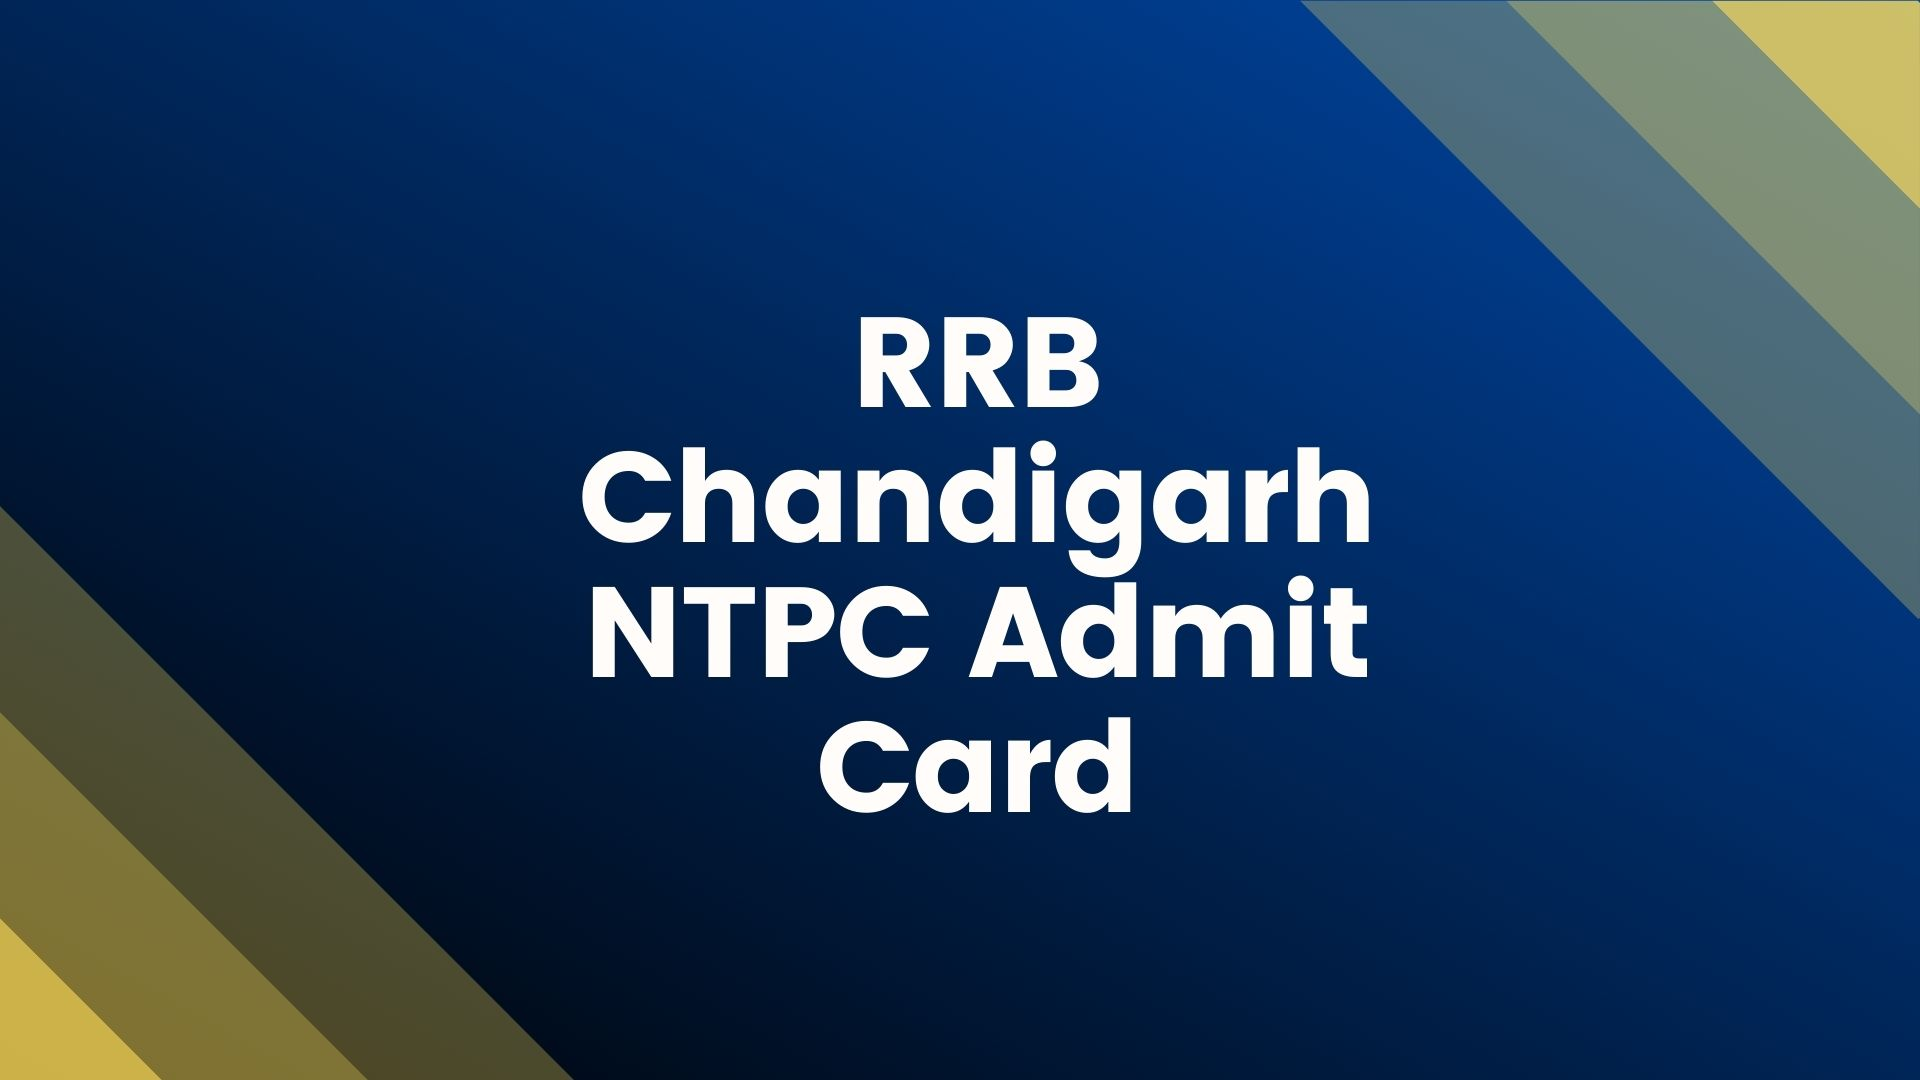 RRB-Chandigarh-NTPC-Admit-Card